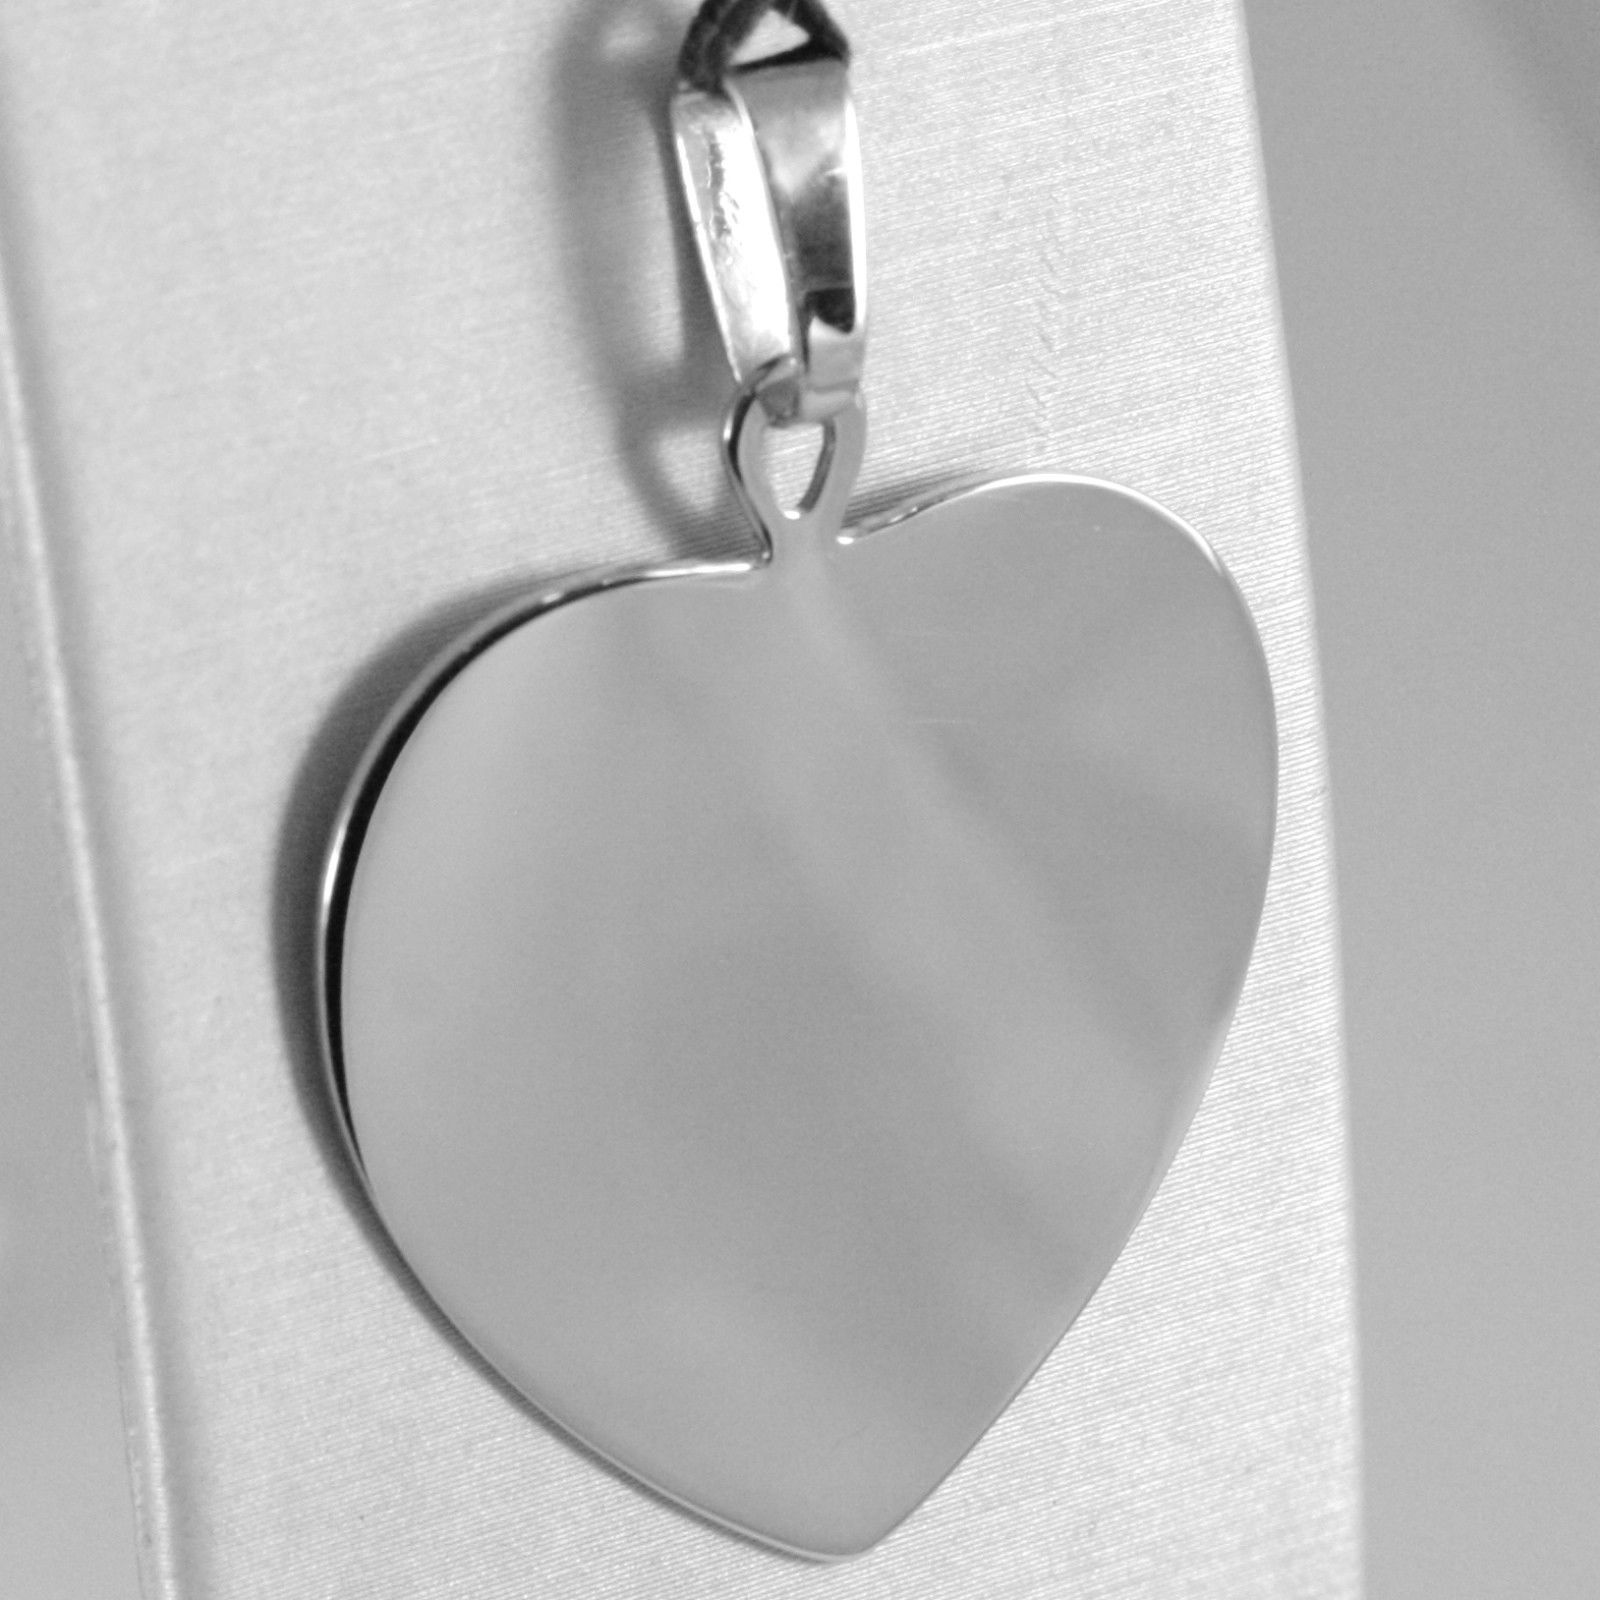 18K WHITE GOLD BIG HEART PHOTO & TEXT ENGRAVED PERSONALIZED PENDANT 30 MM MEDAL